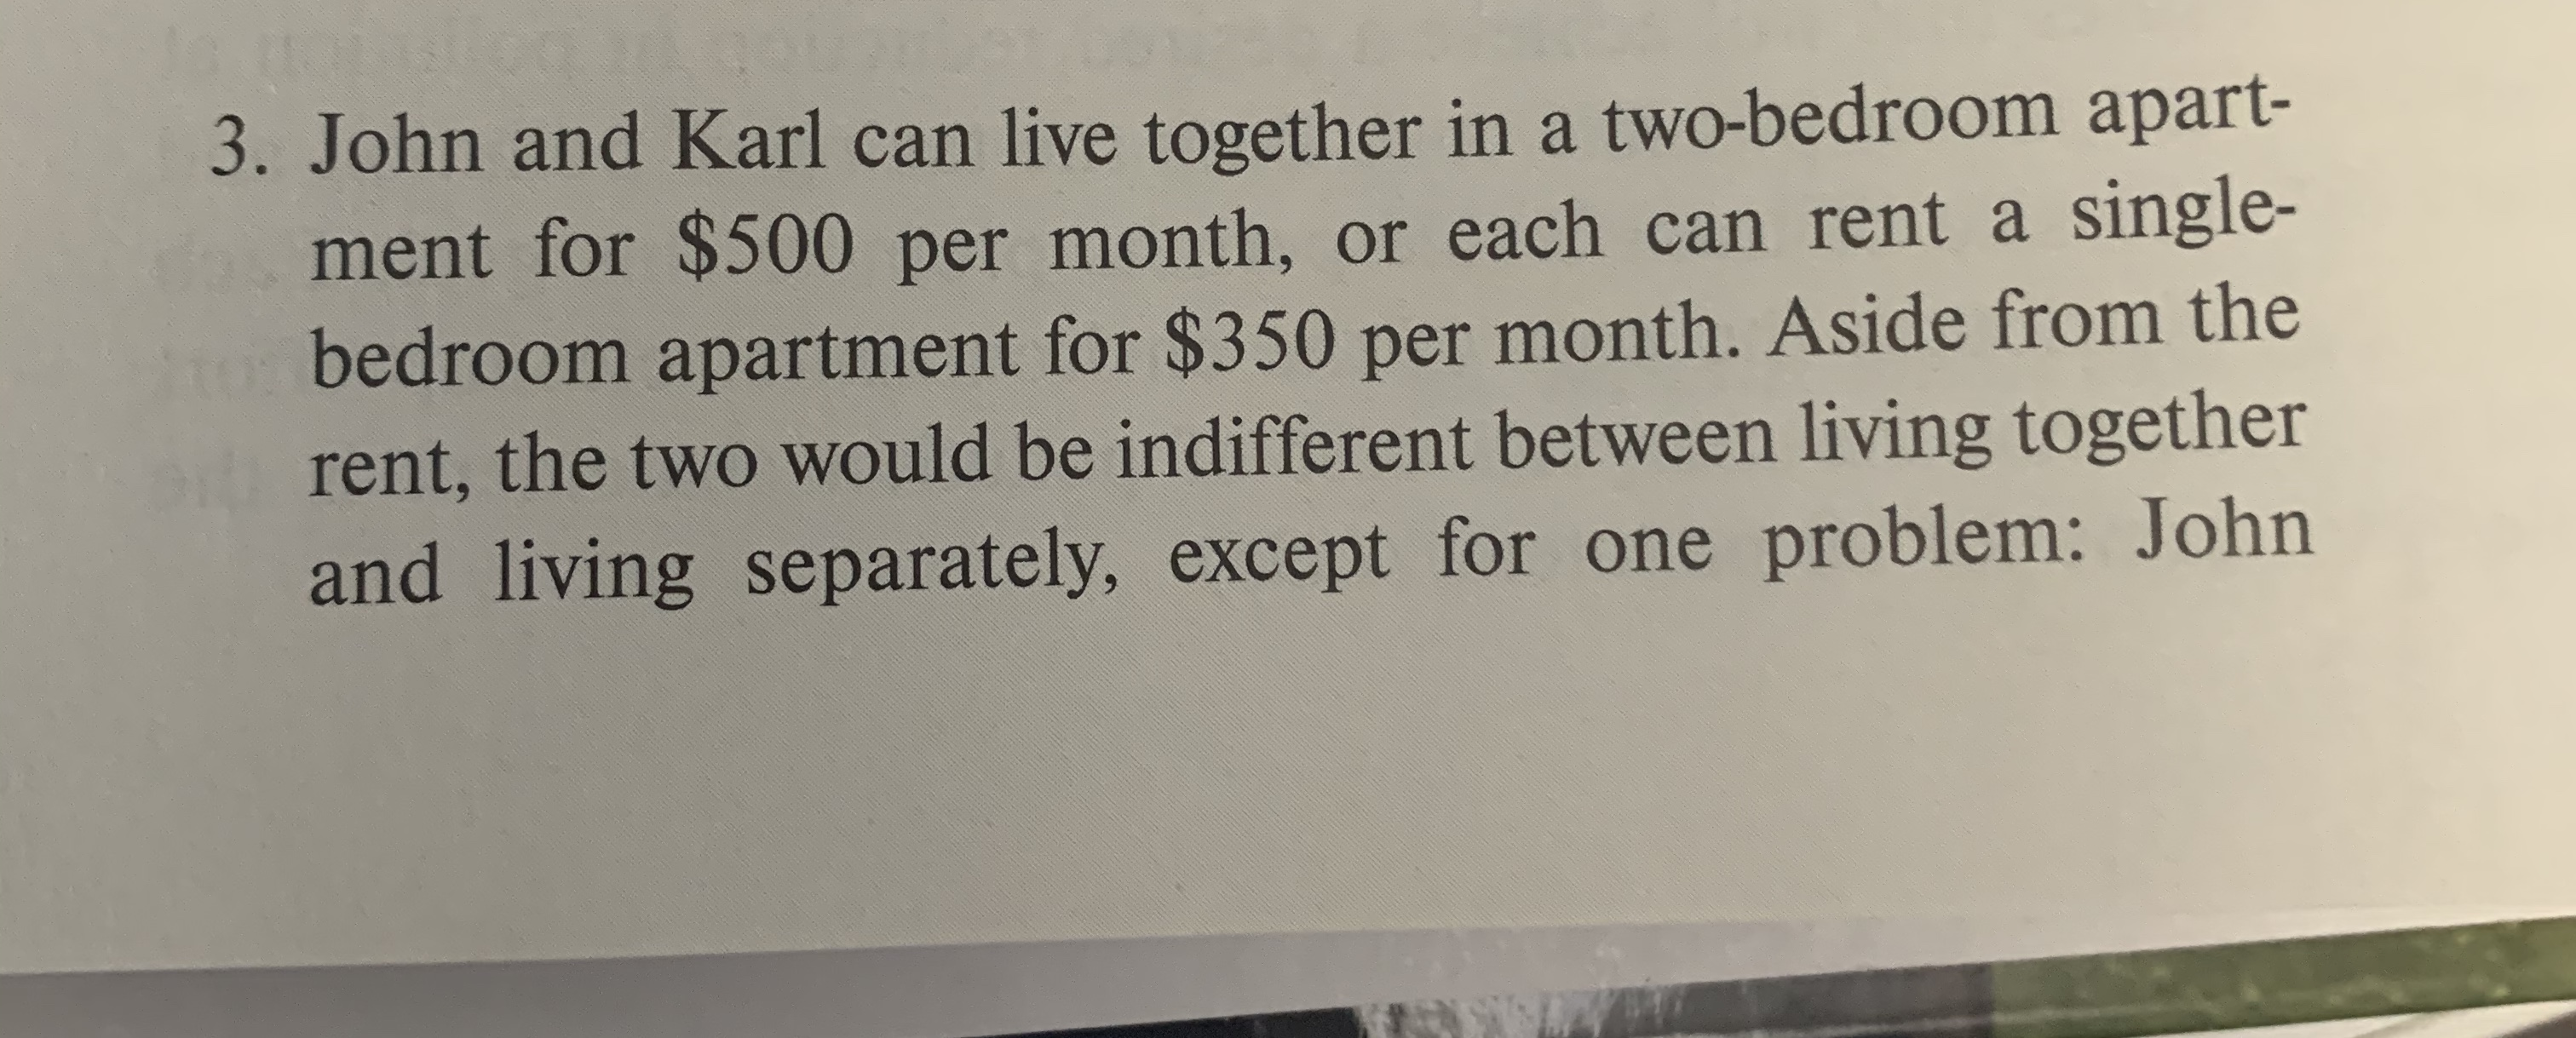 3. John and Karl can live together in a two-bedroom apart- ment for $500 per month, or each can rent a single- bedroom apartment for $350 per month. Aside from the rent, the two would be indifferent between living together and living separately, except for one problem: John